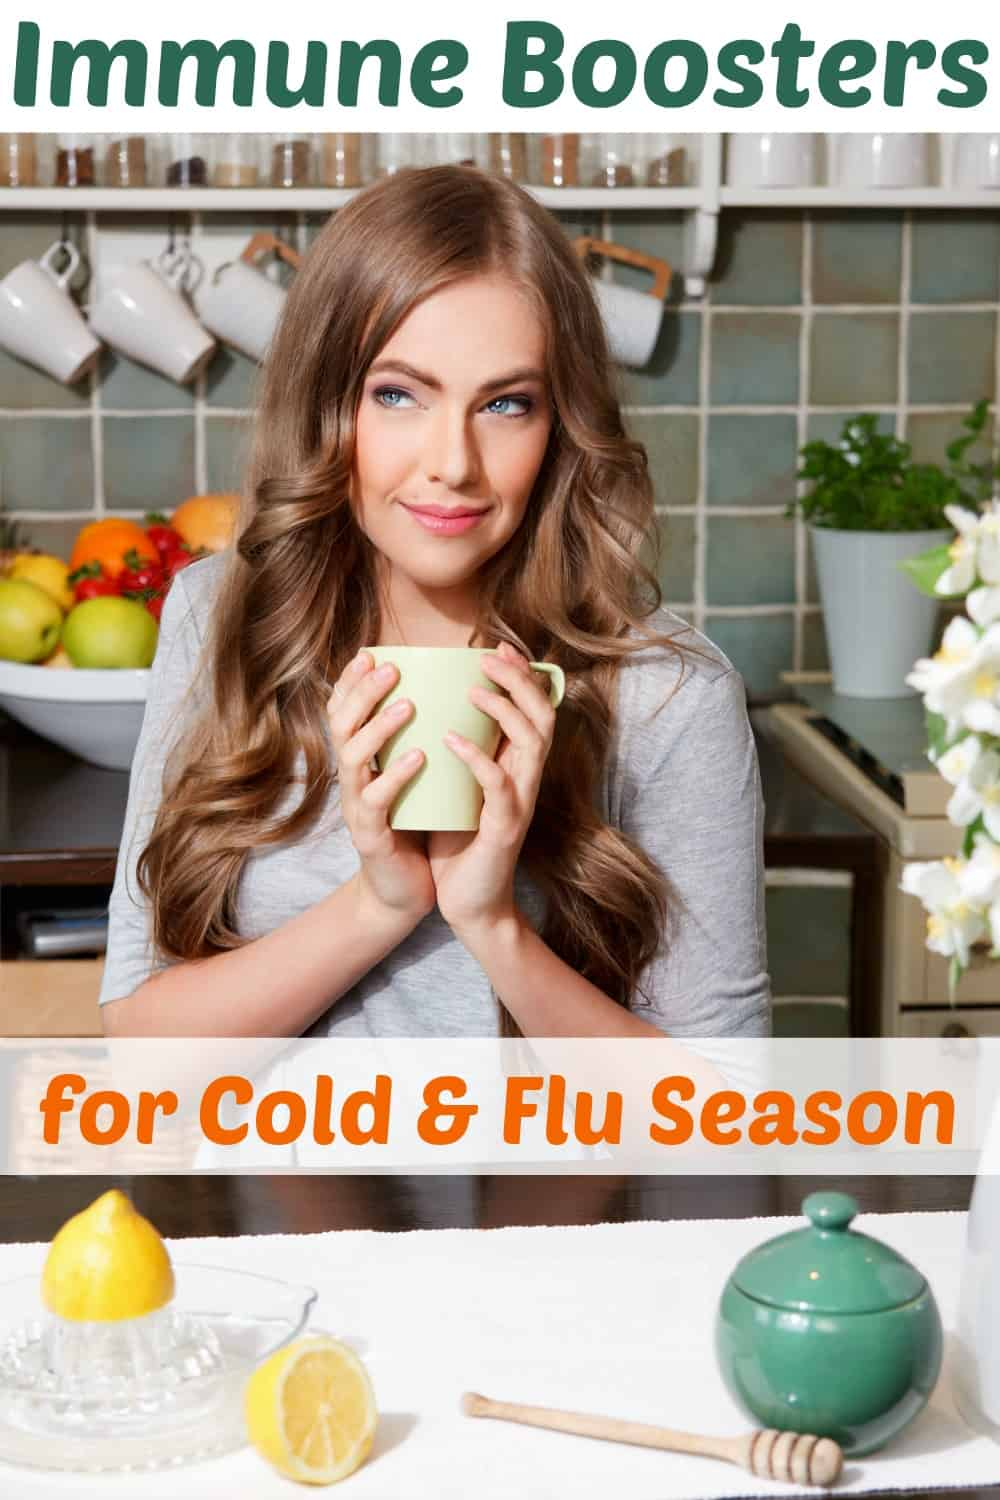 Immune Boosters for Cold & Flu Season